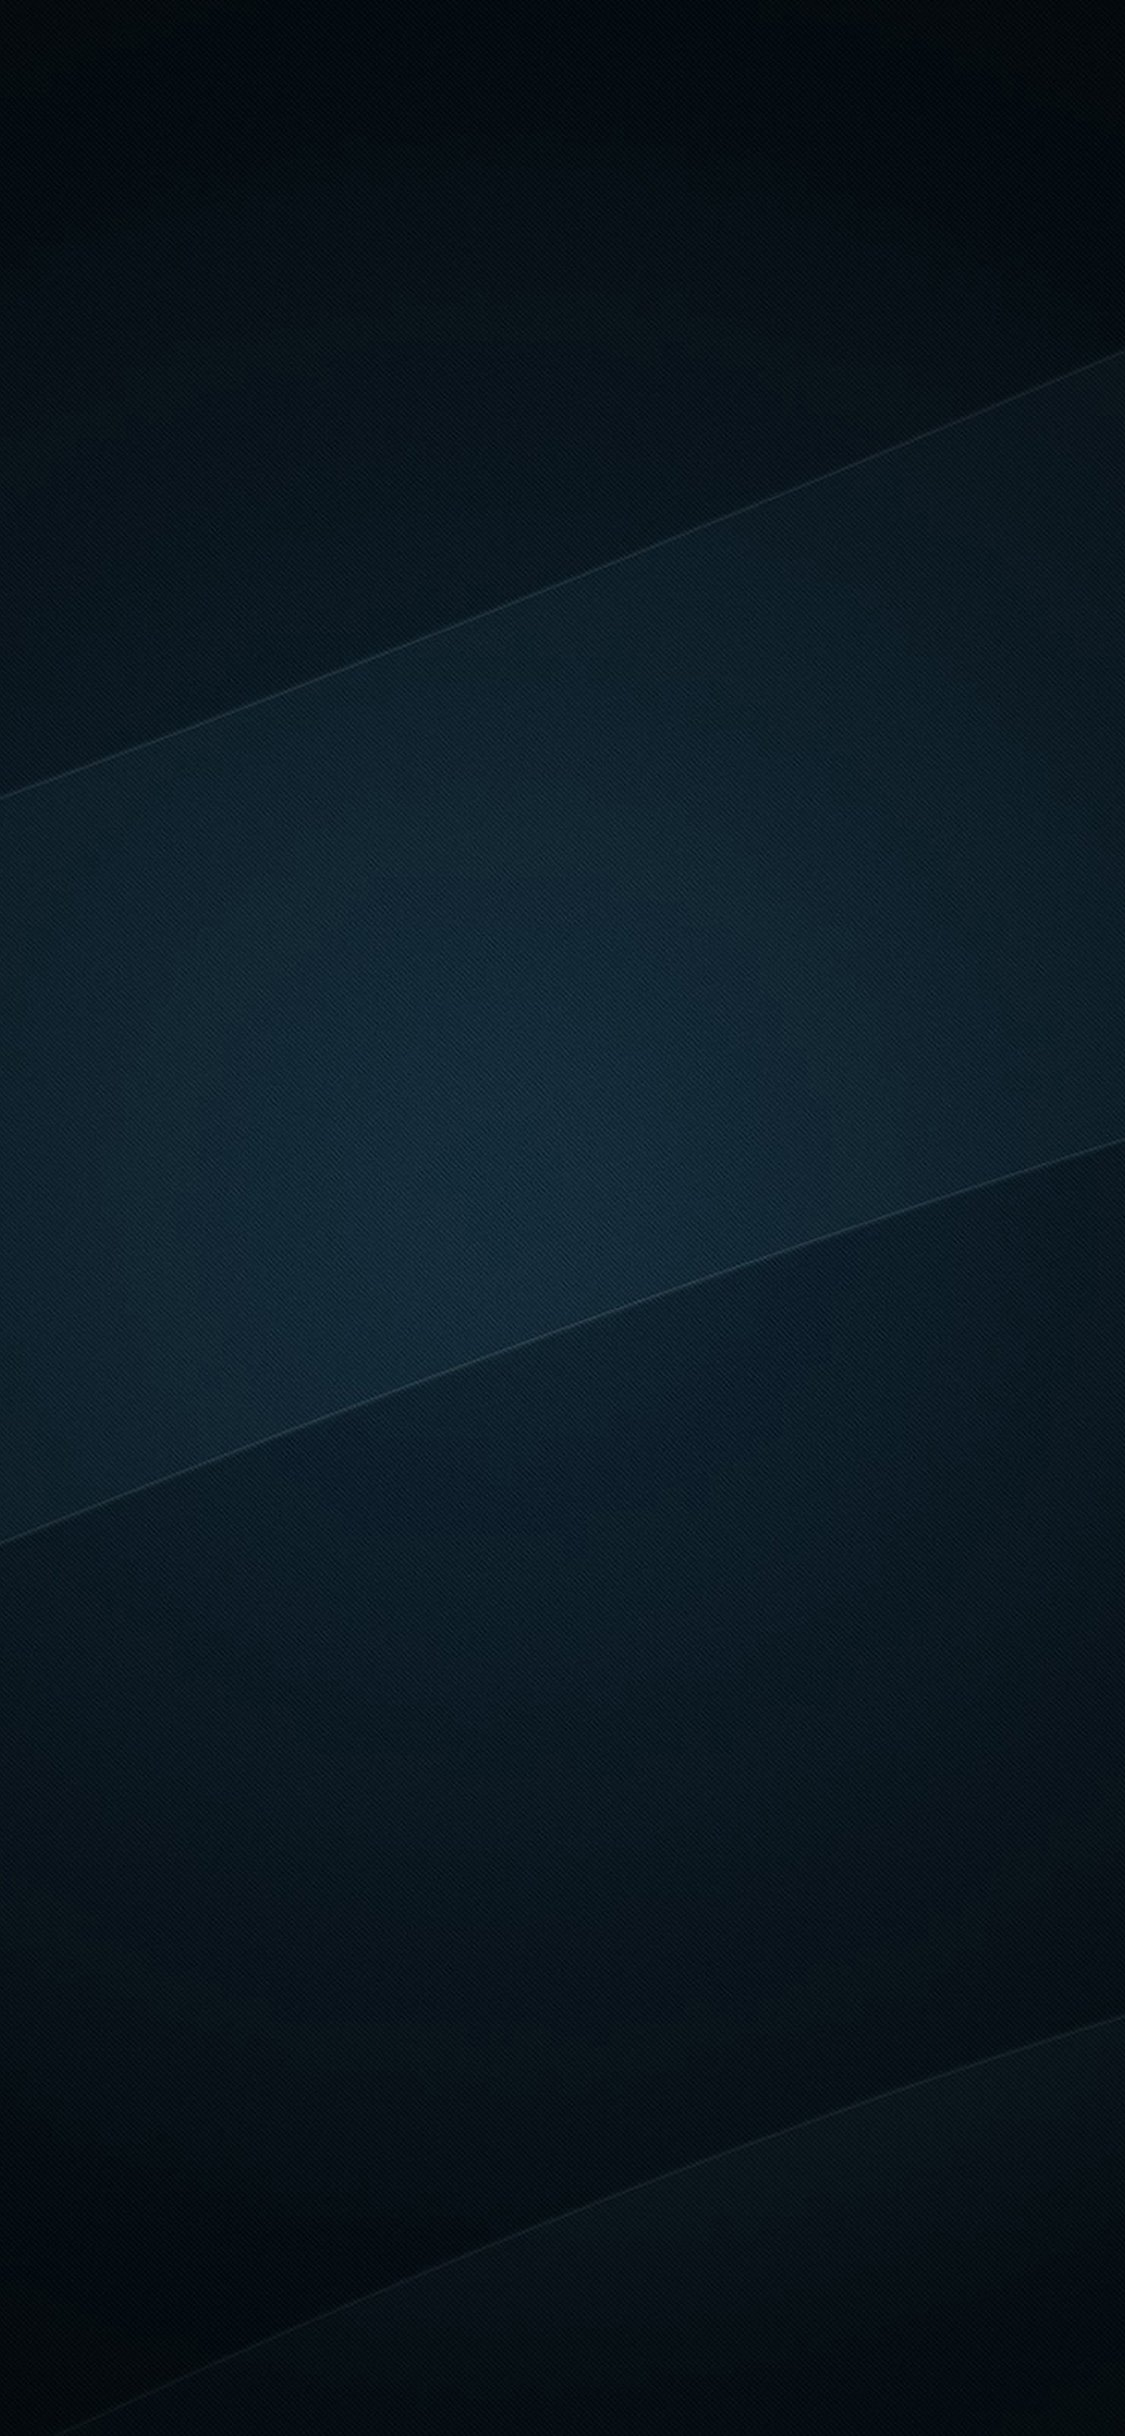 Iphone X Dark Blue Wallpaper Wallpaper Hd For Android